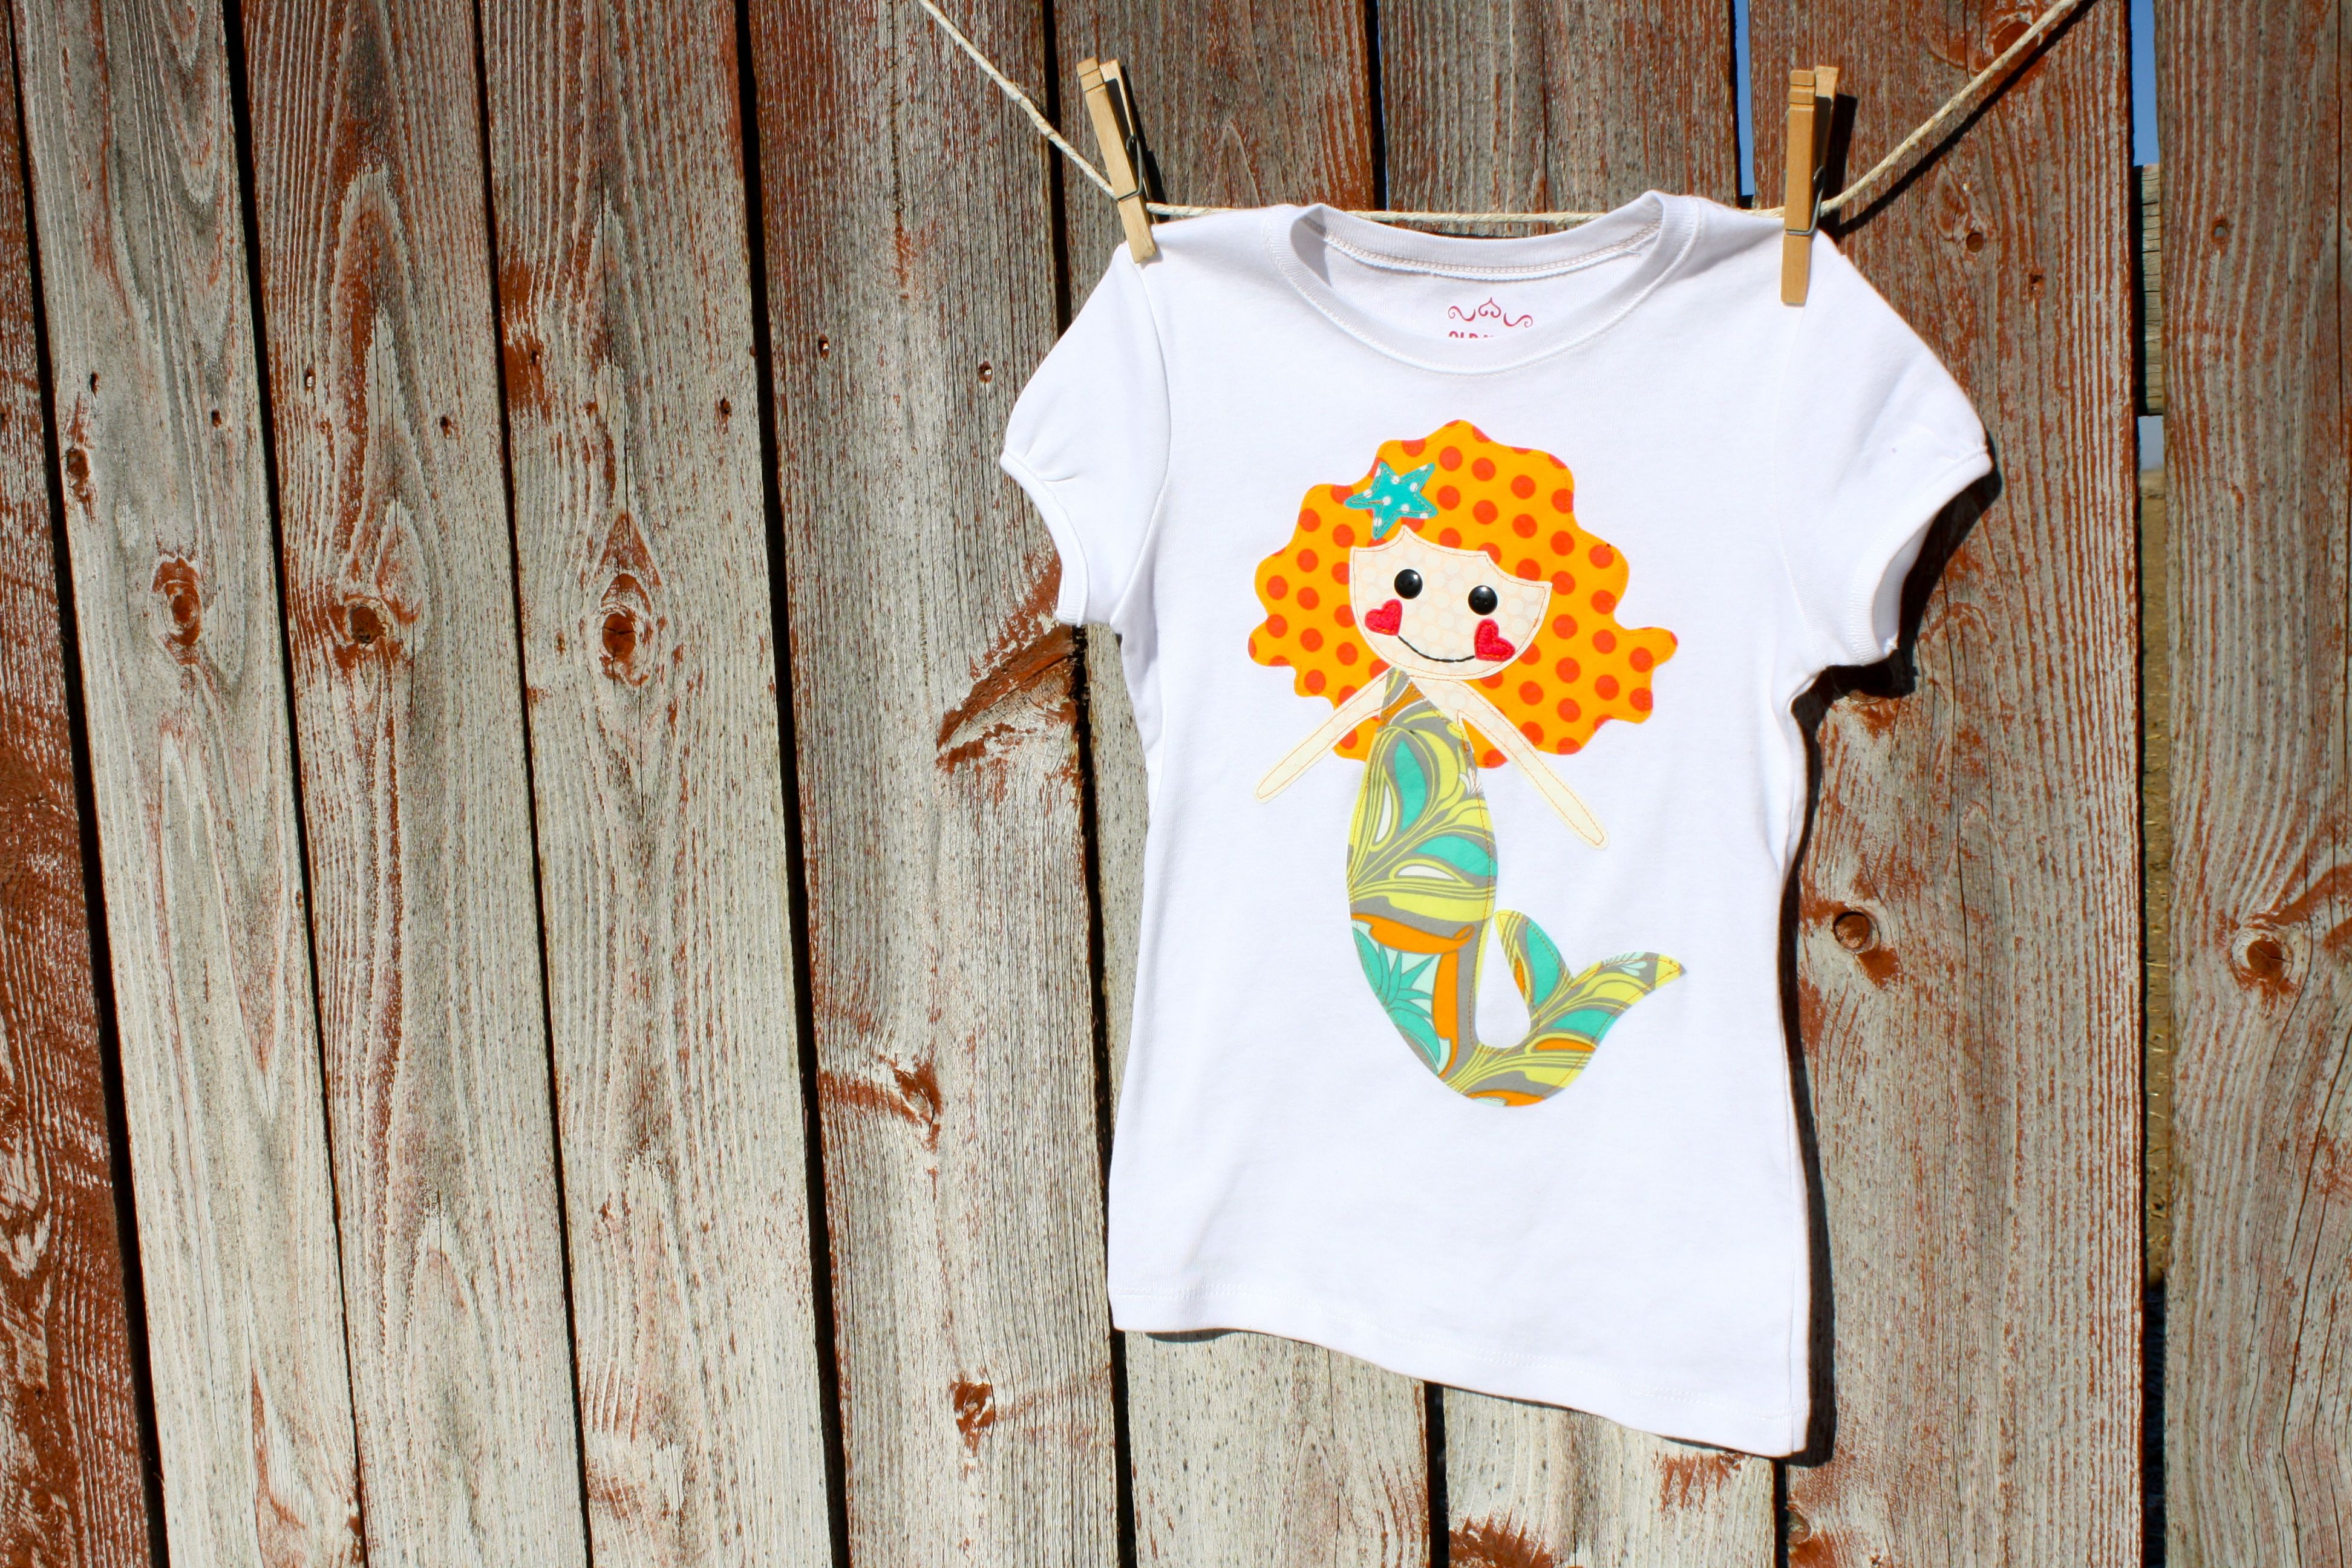 Mermaid_20shirt_202_original